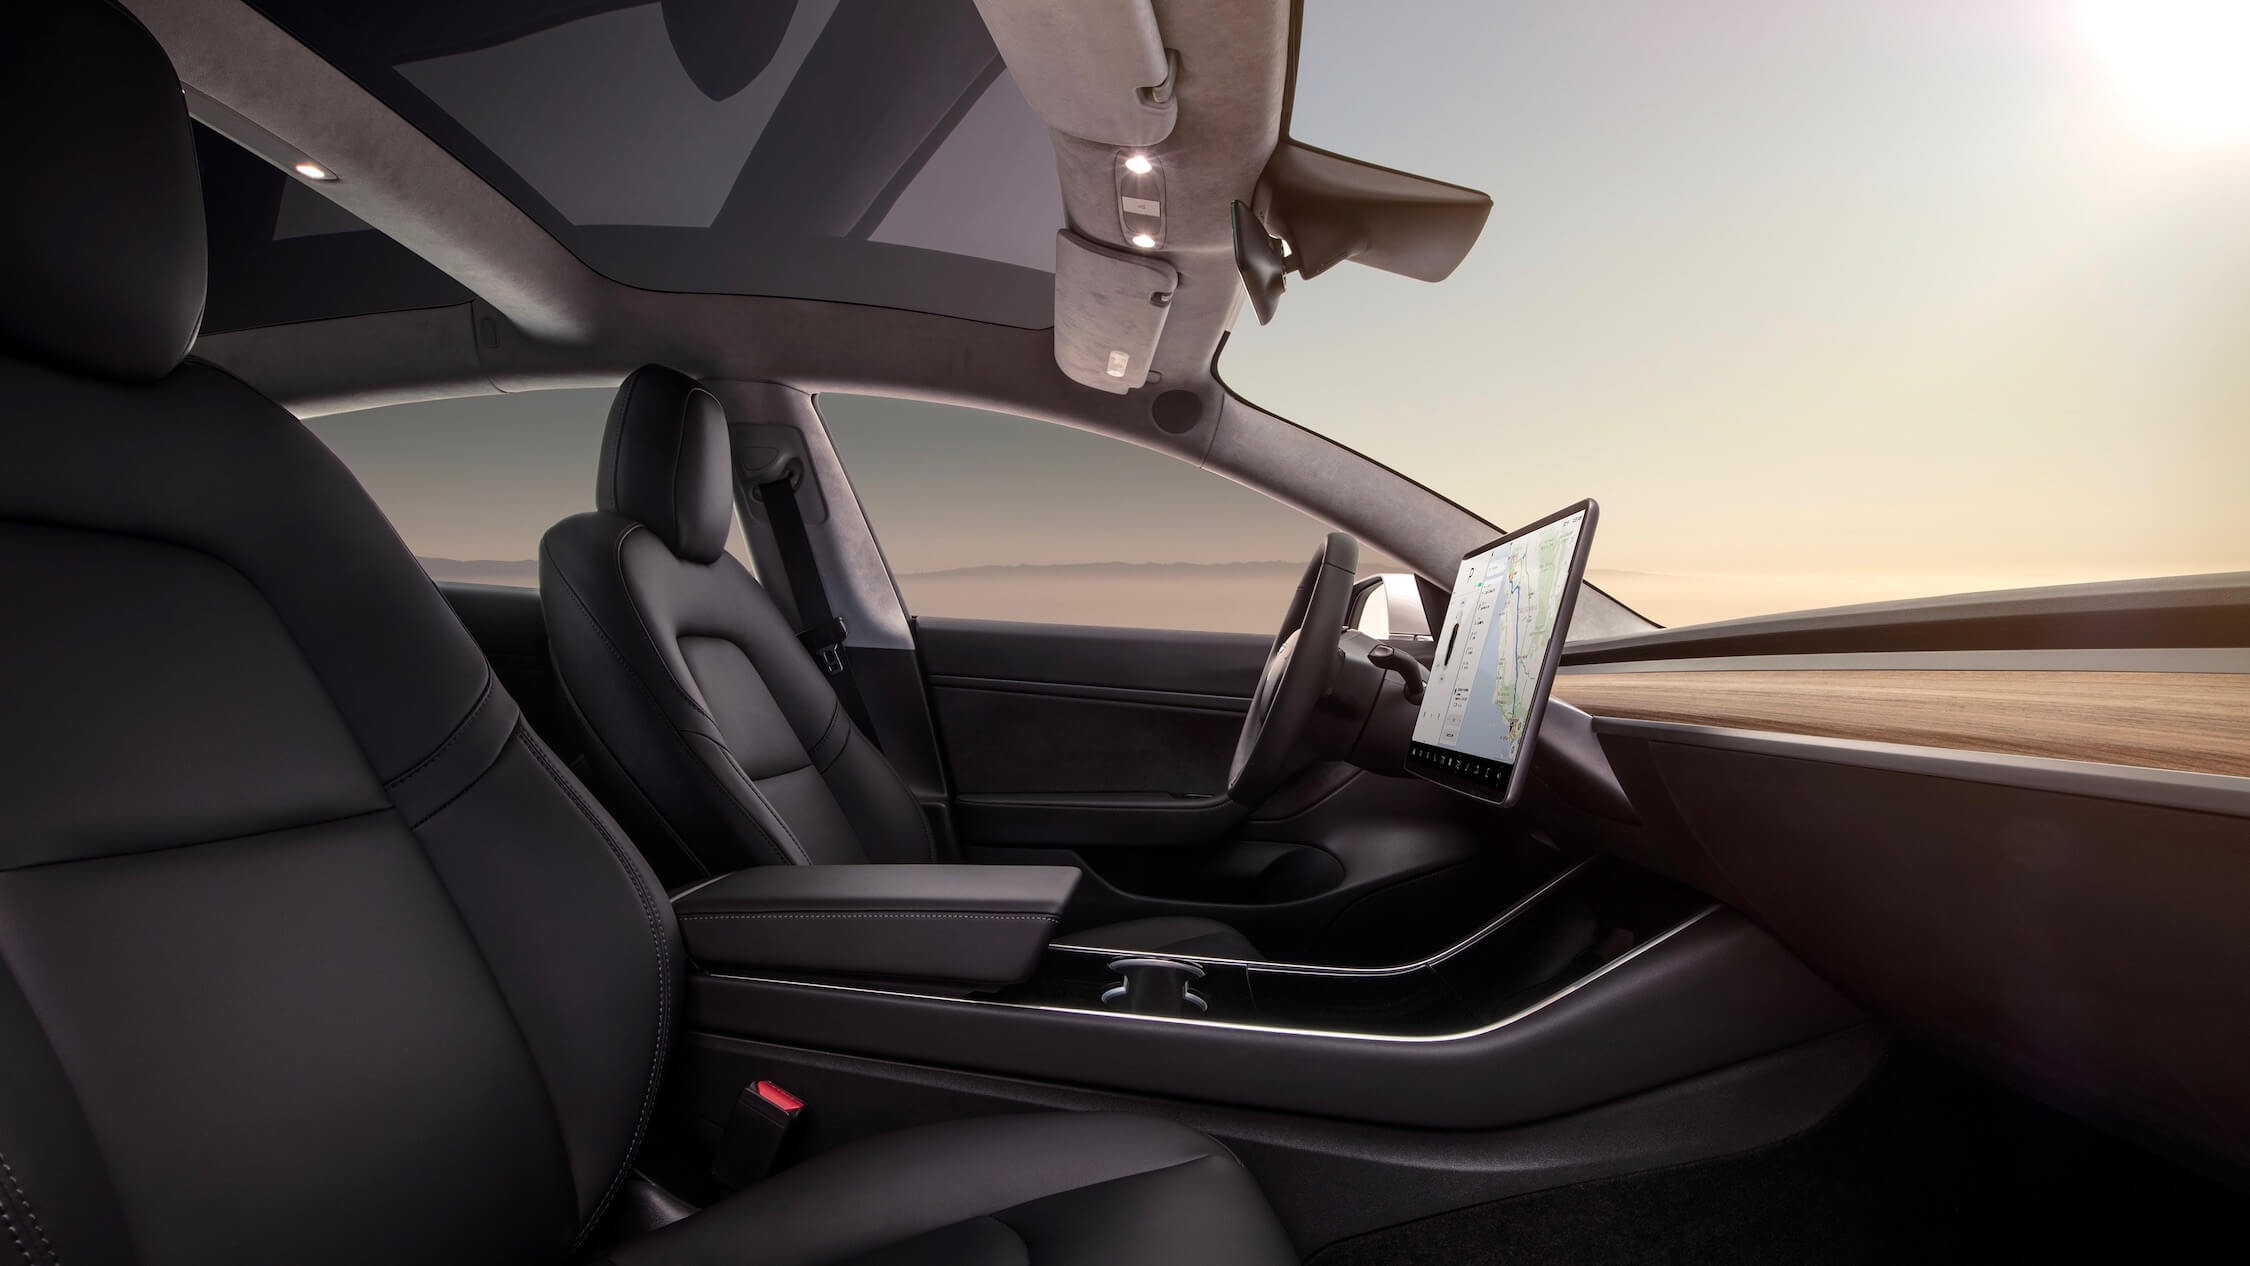 Tesla Model 3 dashboard and interior